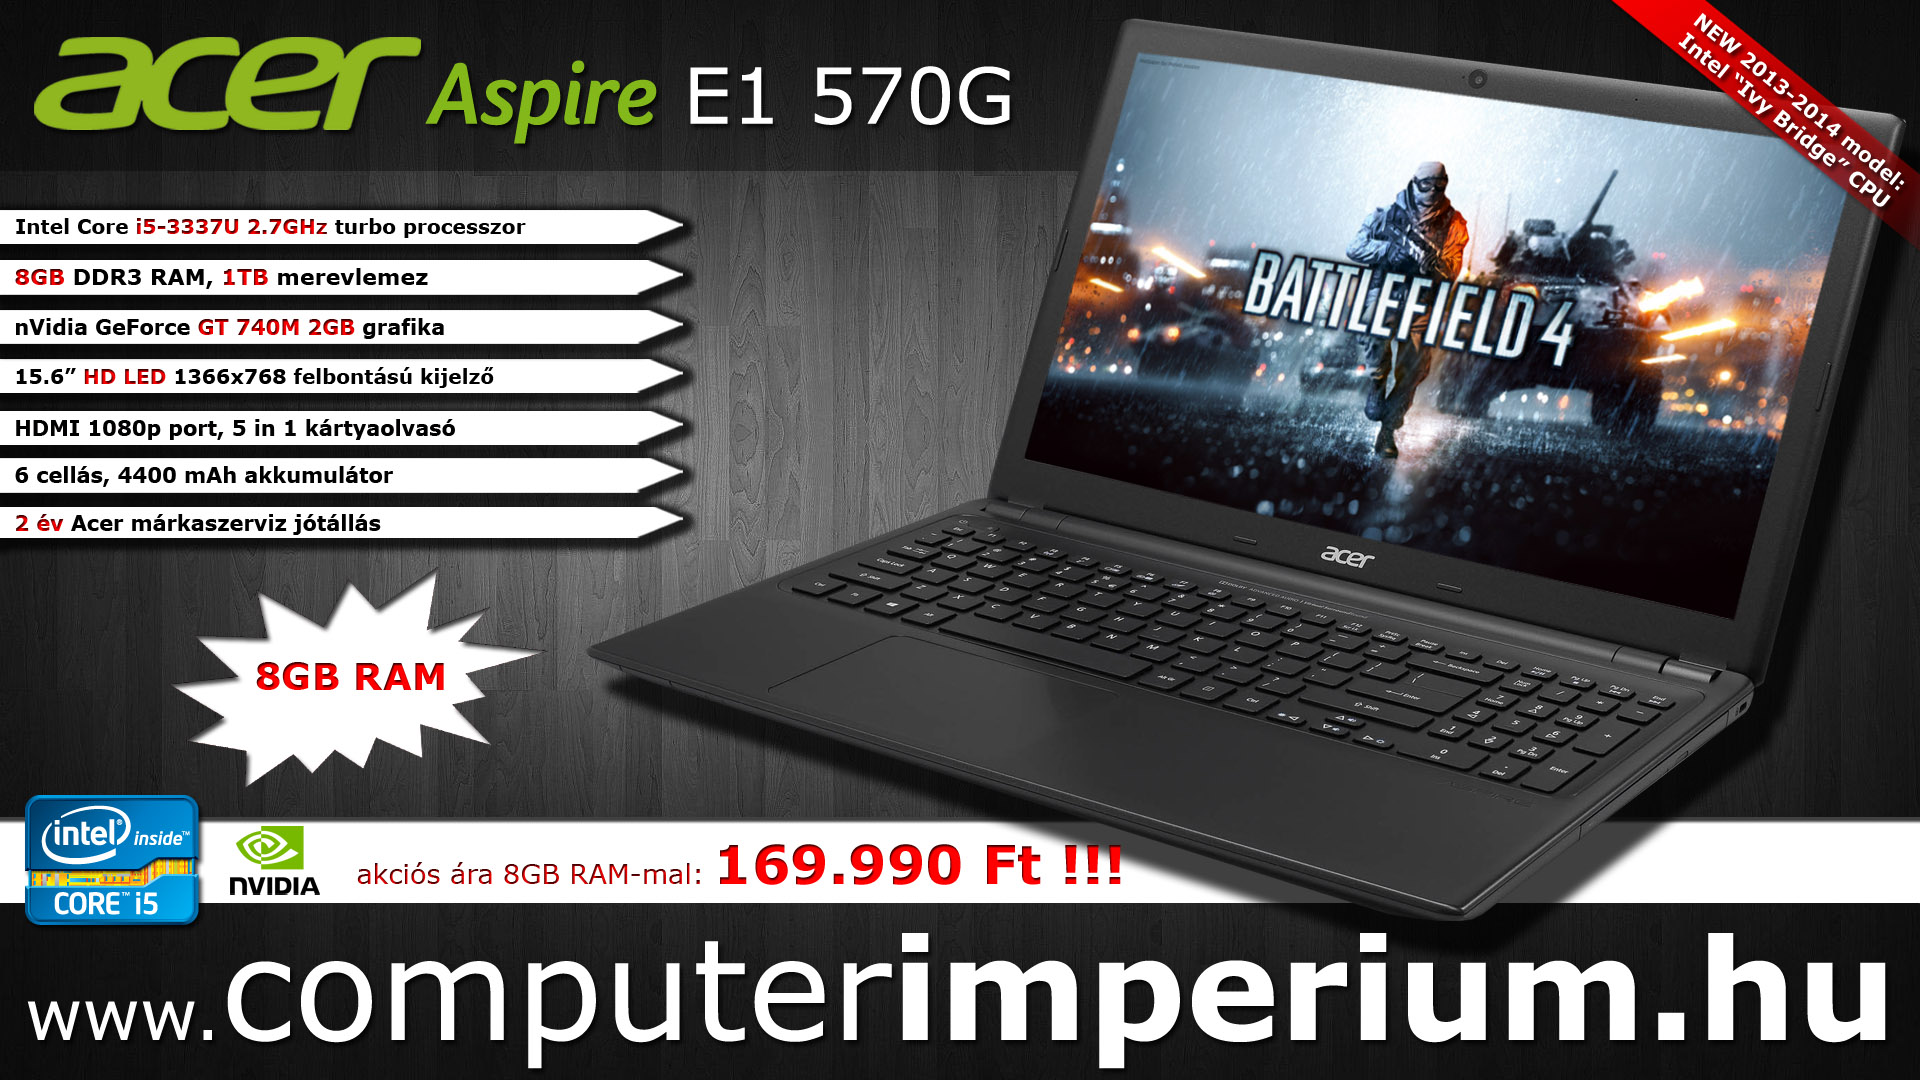 Acer Aspire E1 570G notebook, laptop (NX.MESEU.006_8GB), 8GB RAM-mal!!!